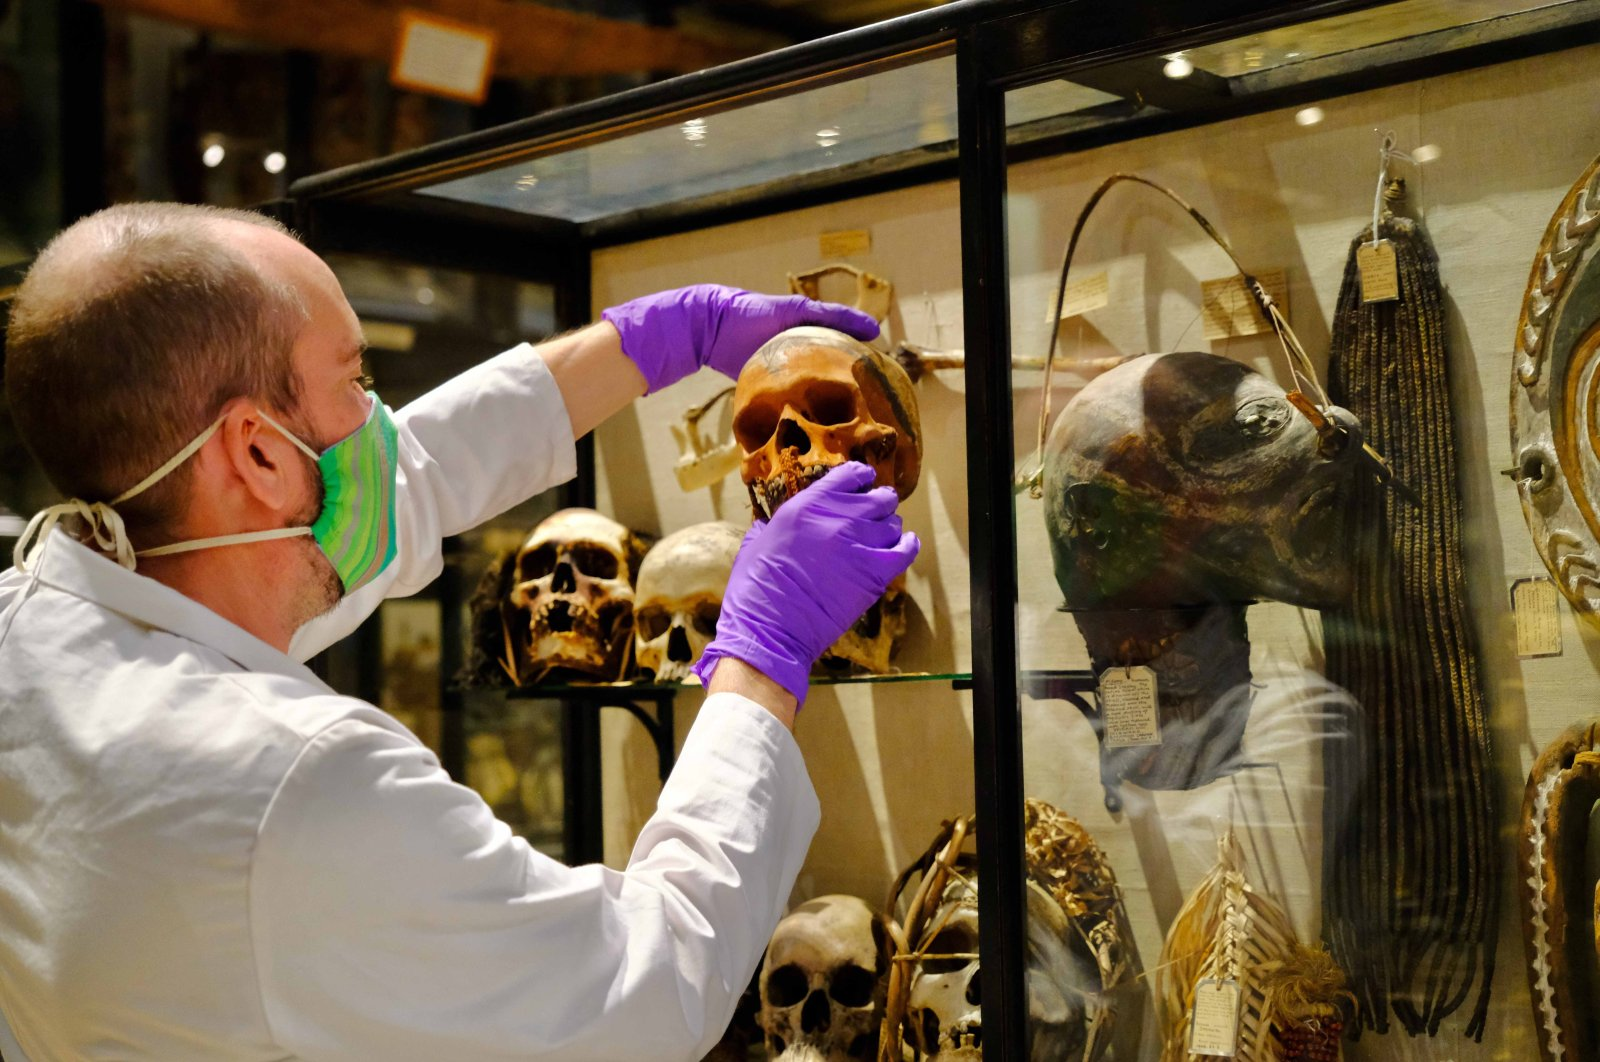 In this image taken in July 2020 and made available by Pitt Rivers Museum, a skull is removed from the Treatment of Dead Enemies case at the Pitt Rivers Museum, part of the University of Oxford, Oxford, England. (AP PHOTO)